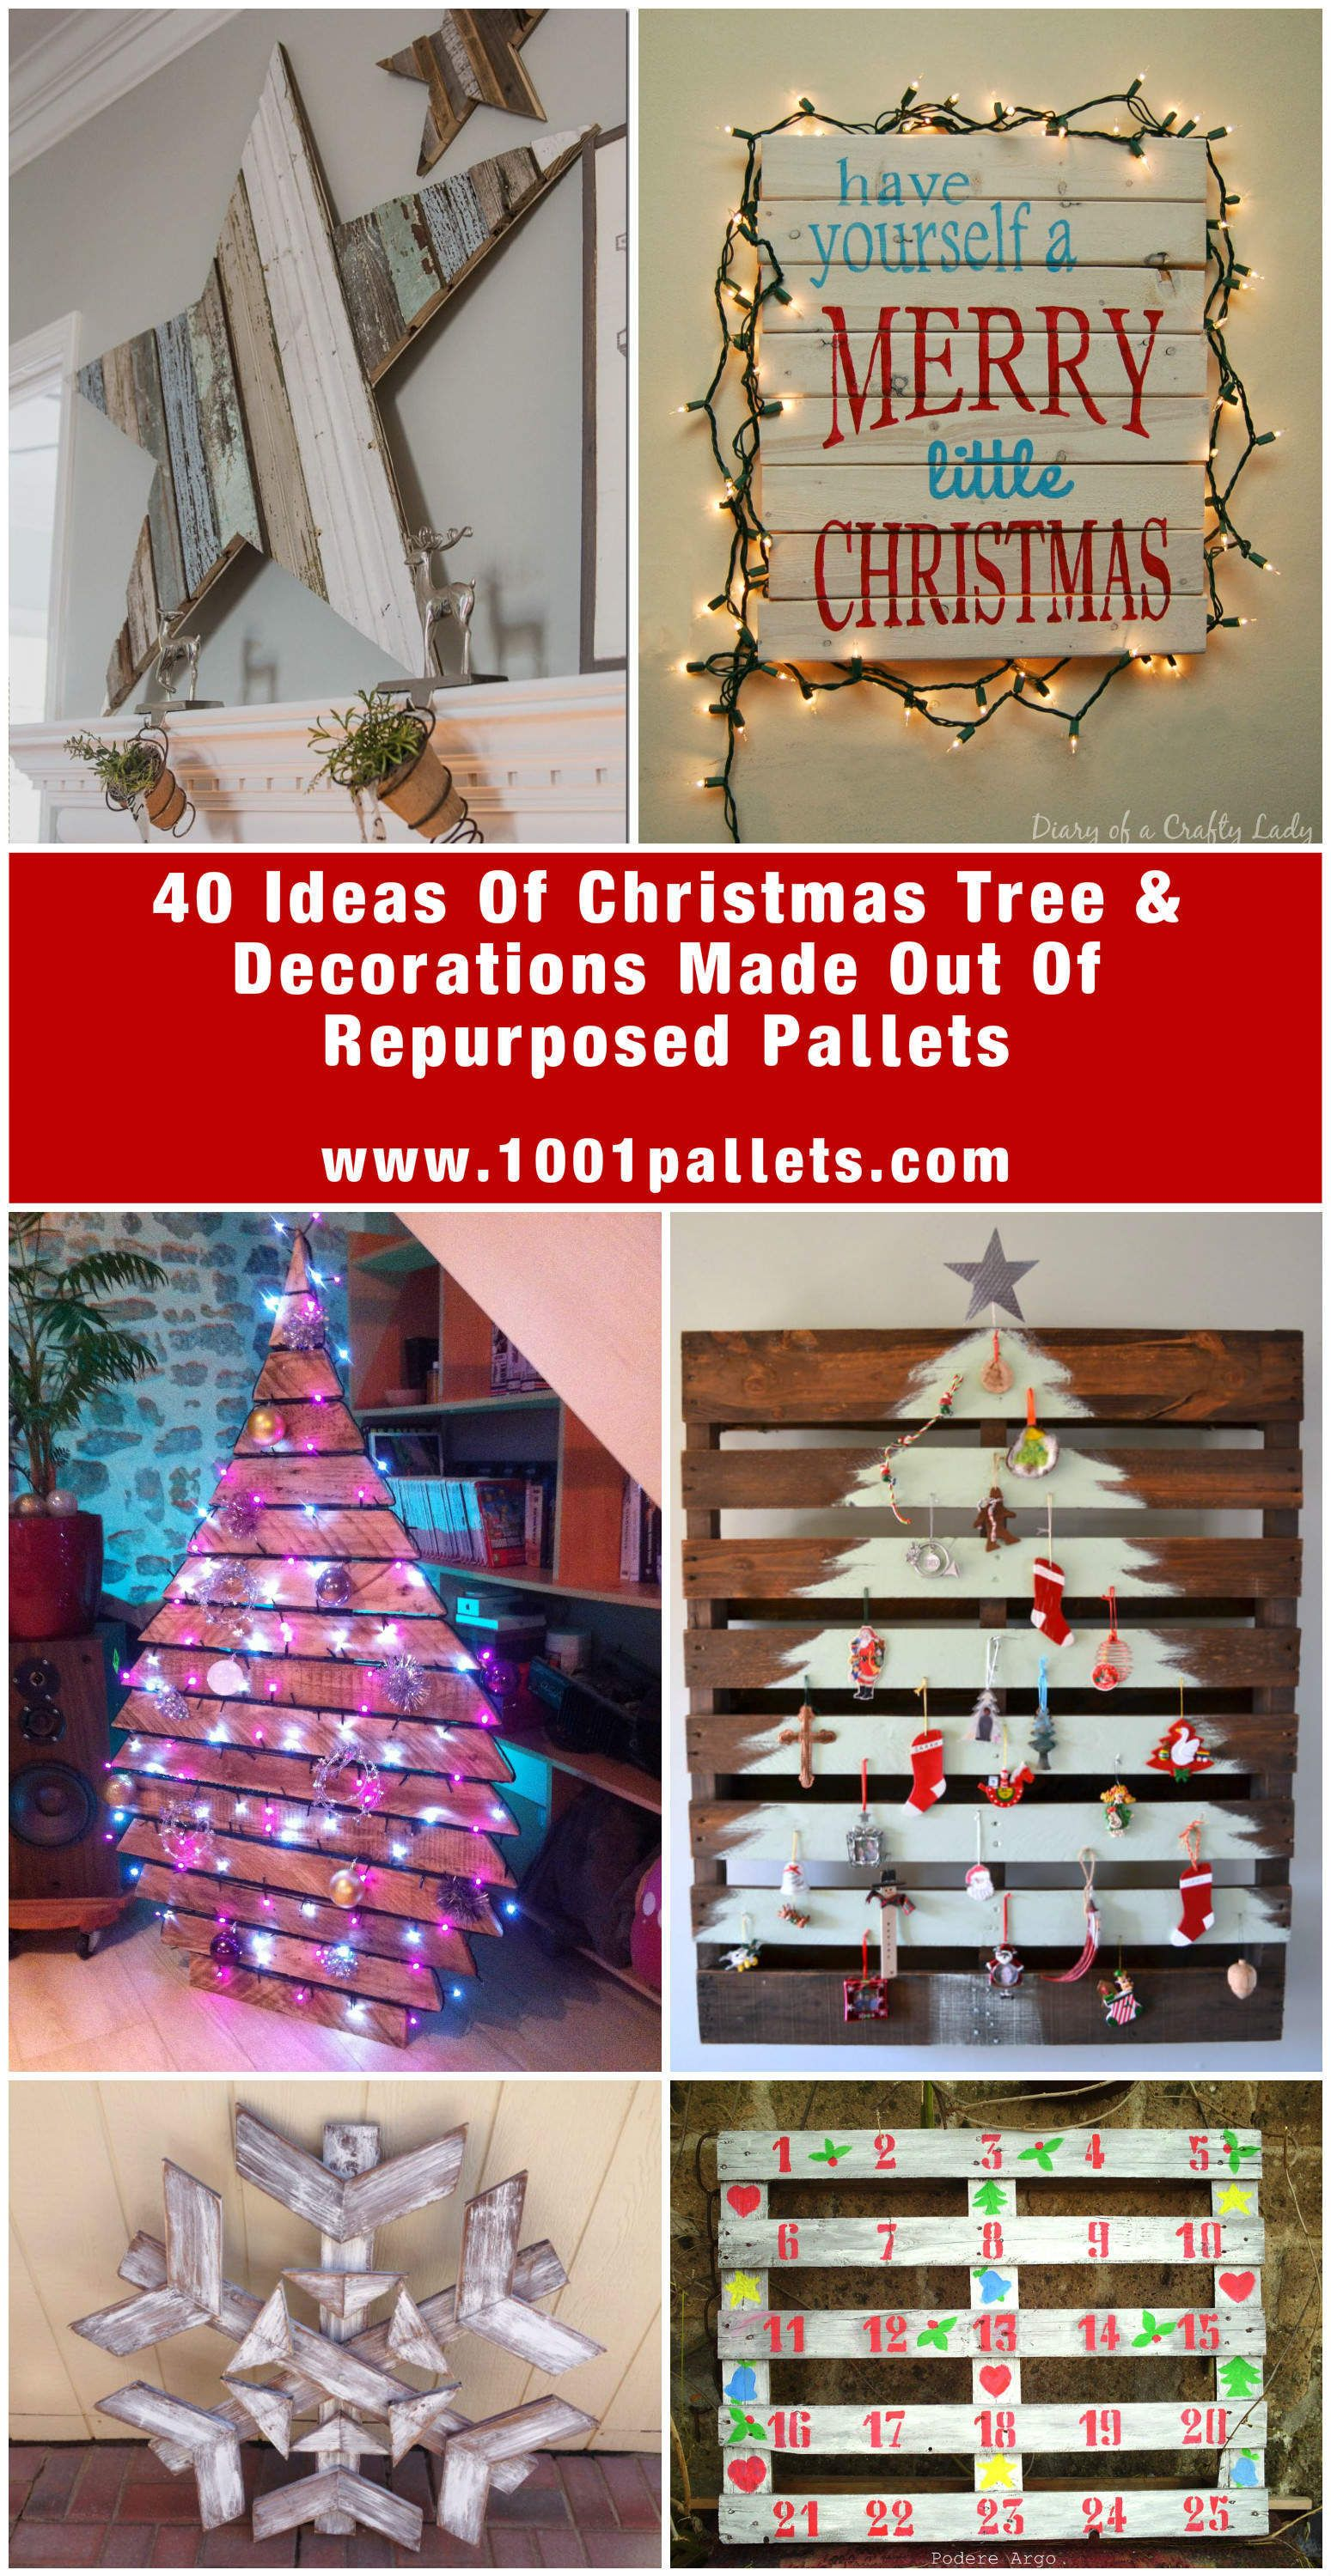 Wood Pallet Christmas Tree Ideas.65 Pallet Christmas Trees Holiday Pallet Decorations Ideas